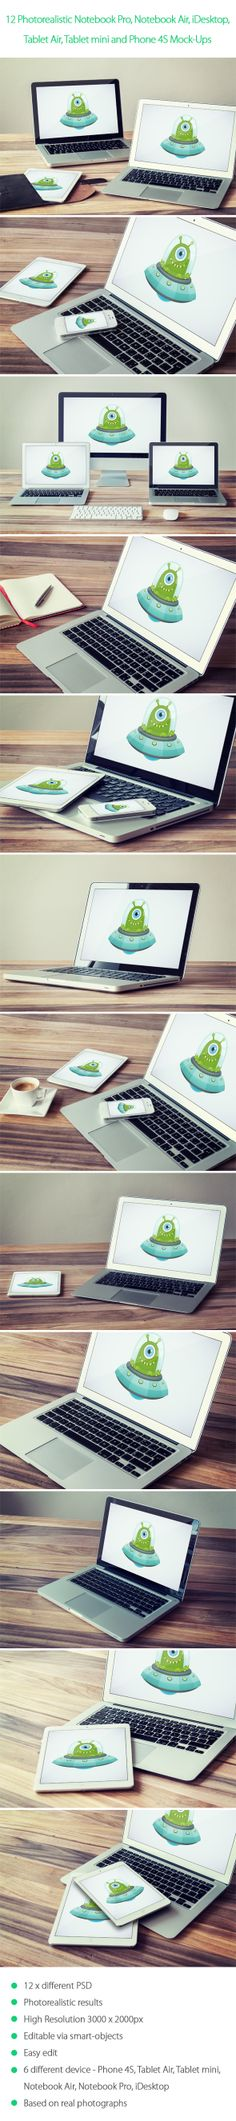 12 Photorealistic Notebook, Mobile Device Mock-Ups (GRAPHICRIVER.NET)